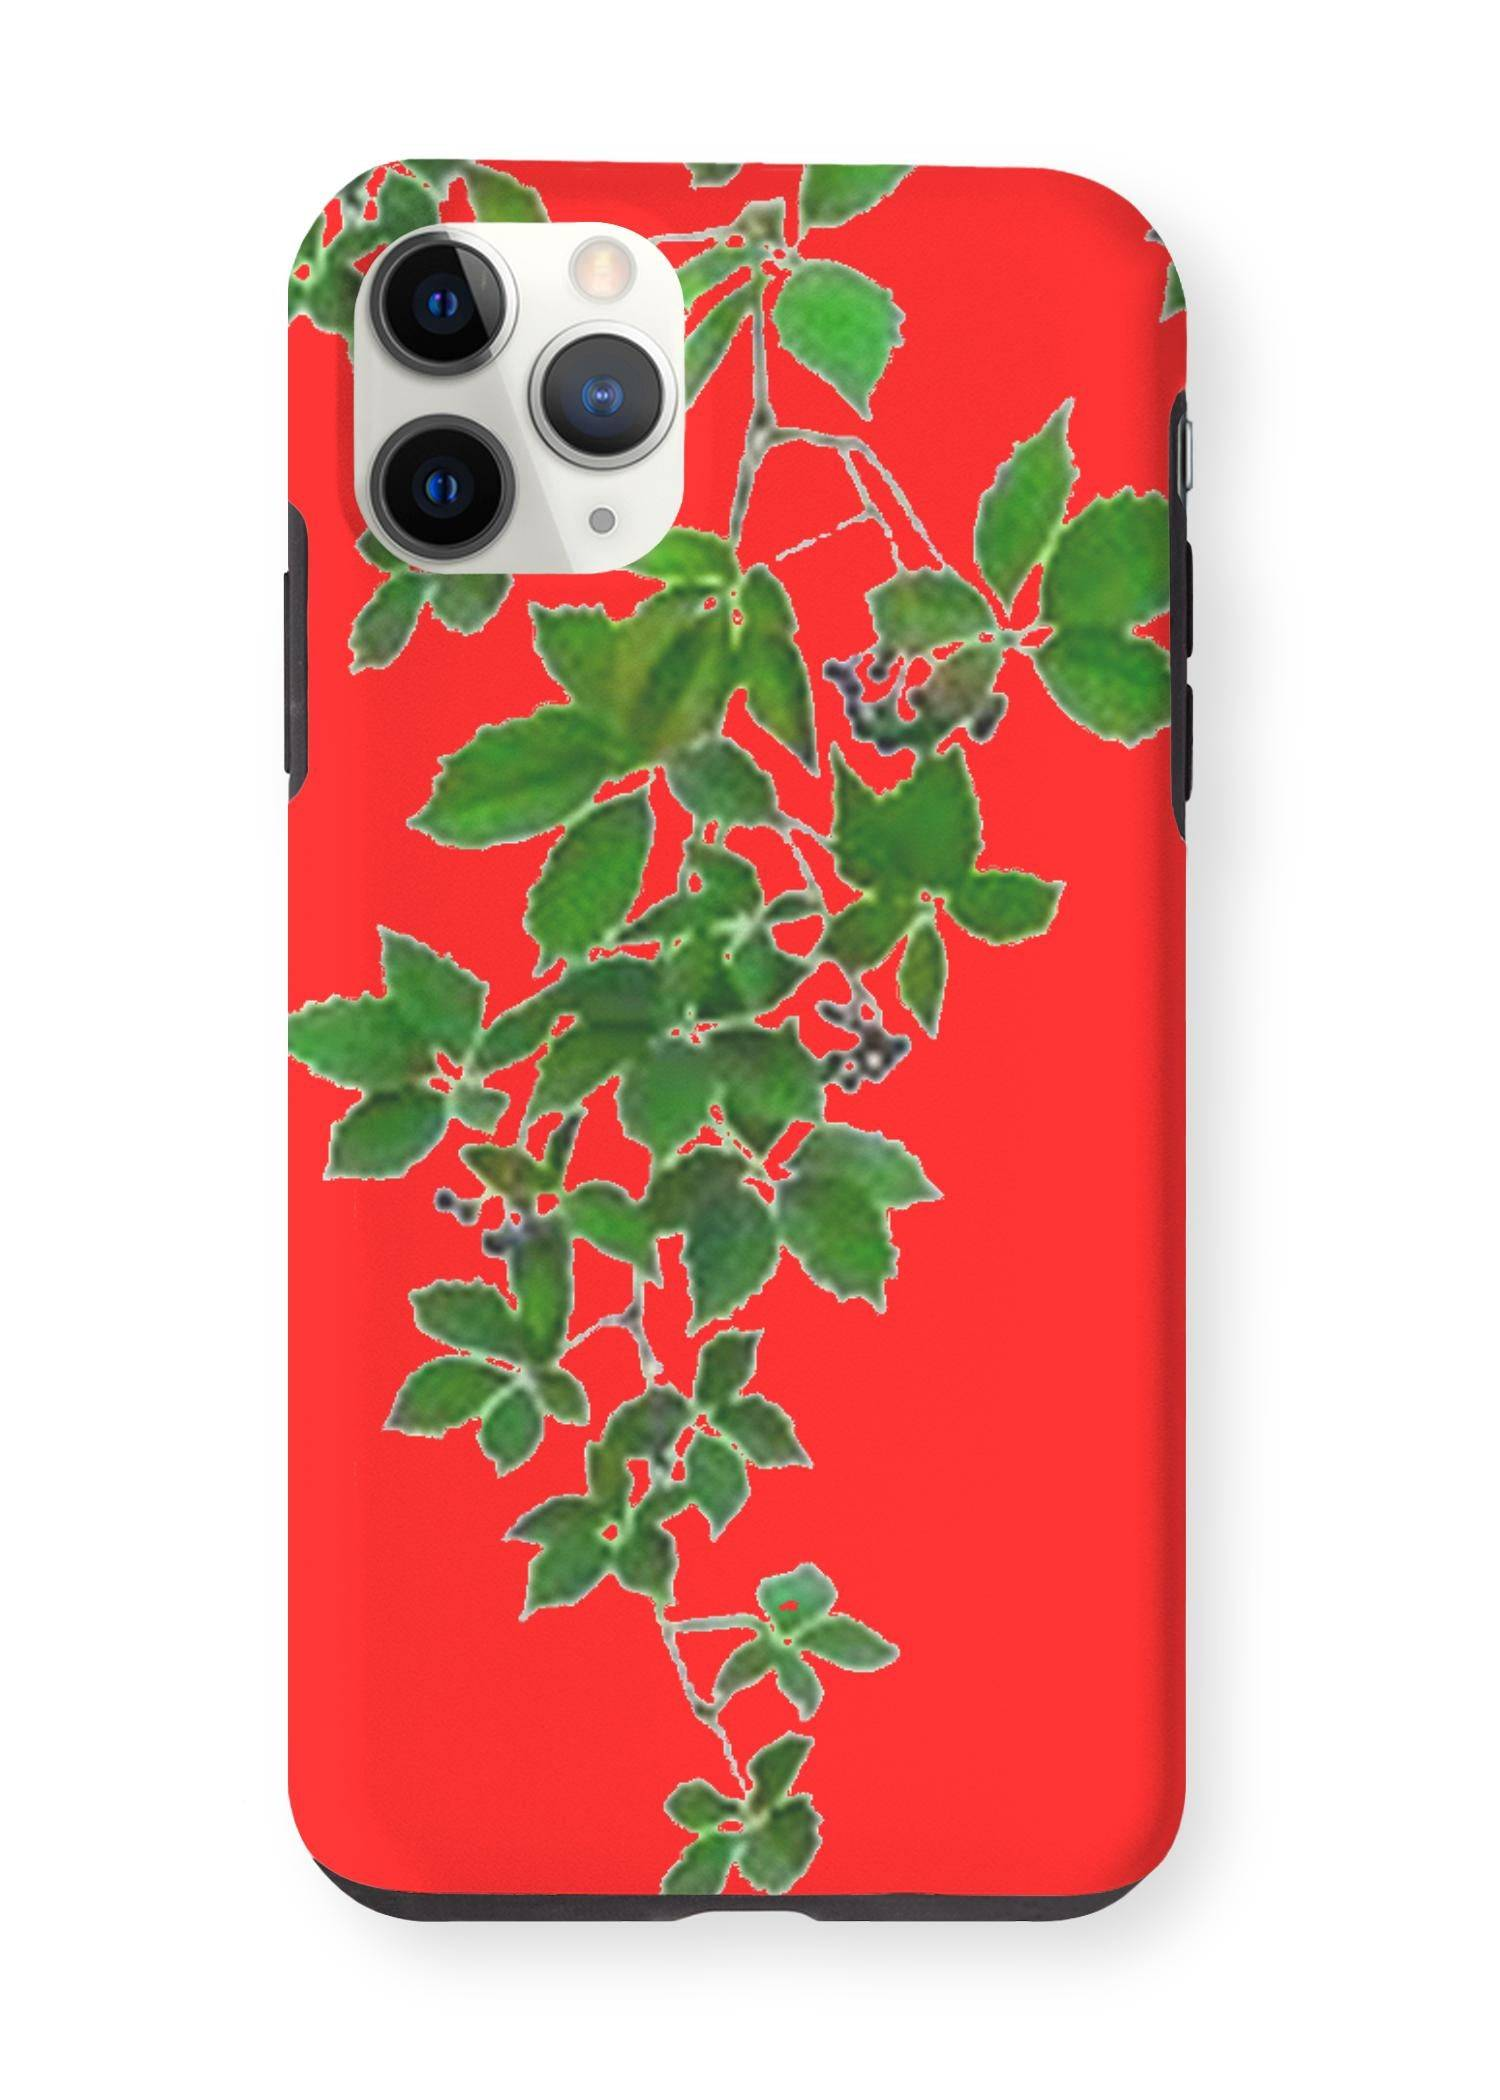 VIDA iPhone Case - Red Hanging Home Decor by VIDA Original Artist  - Size: iPhone 11 Pro Max / Tough